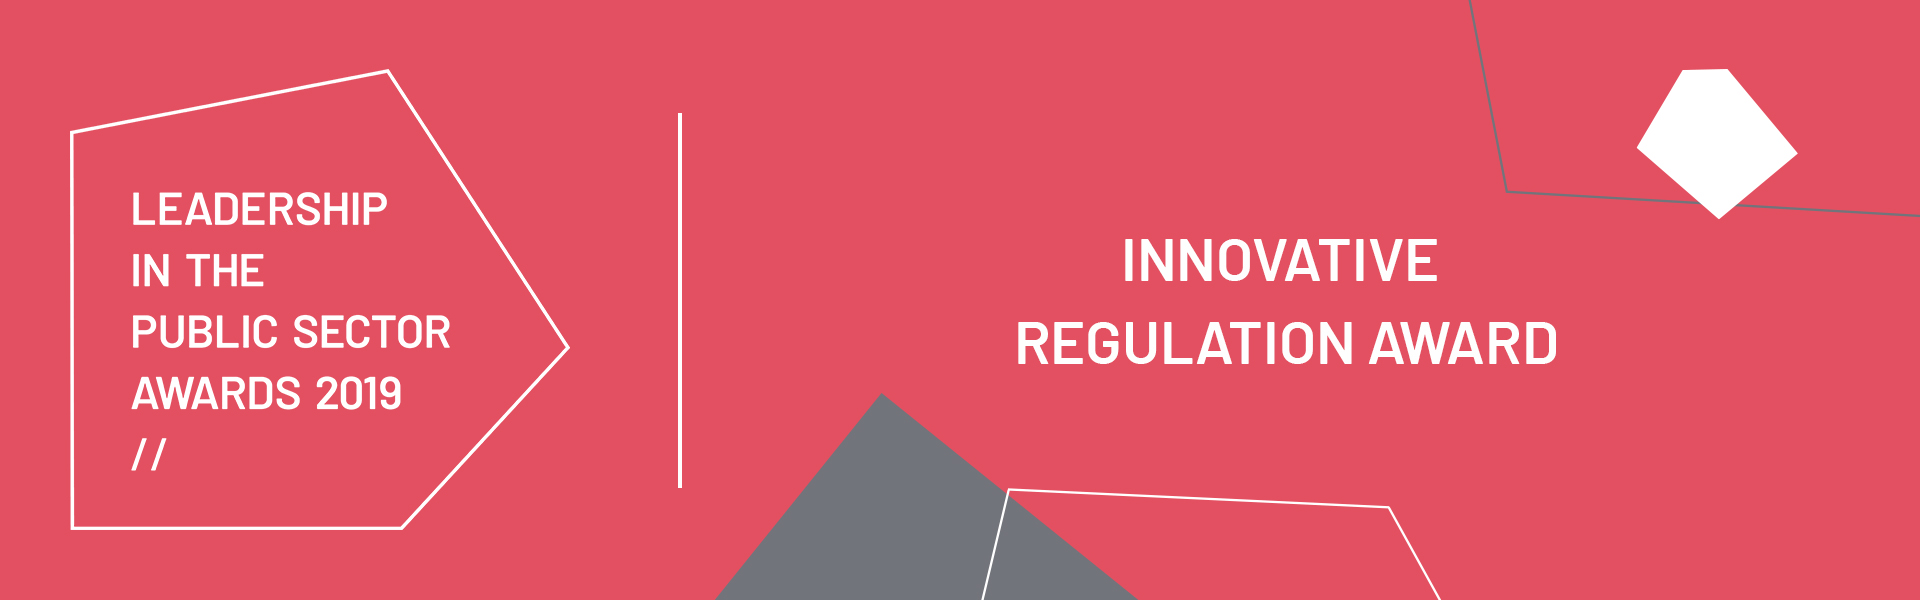 Innovative Regulation Award_1920x600_V1.jpg